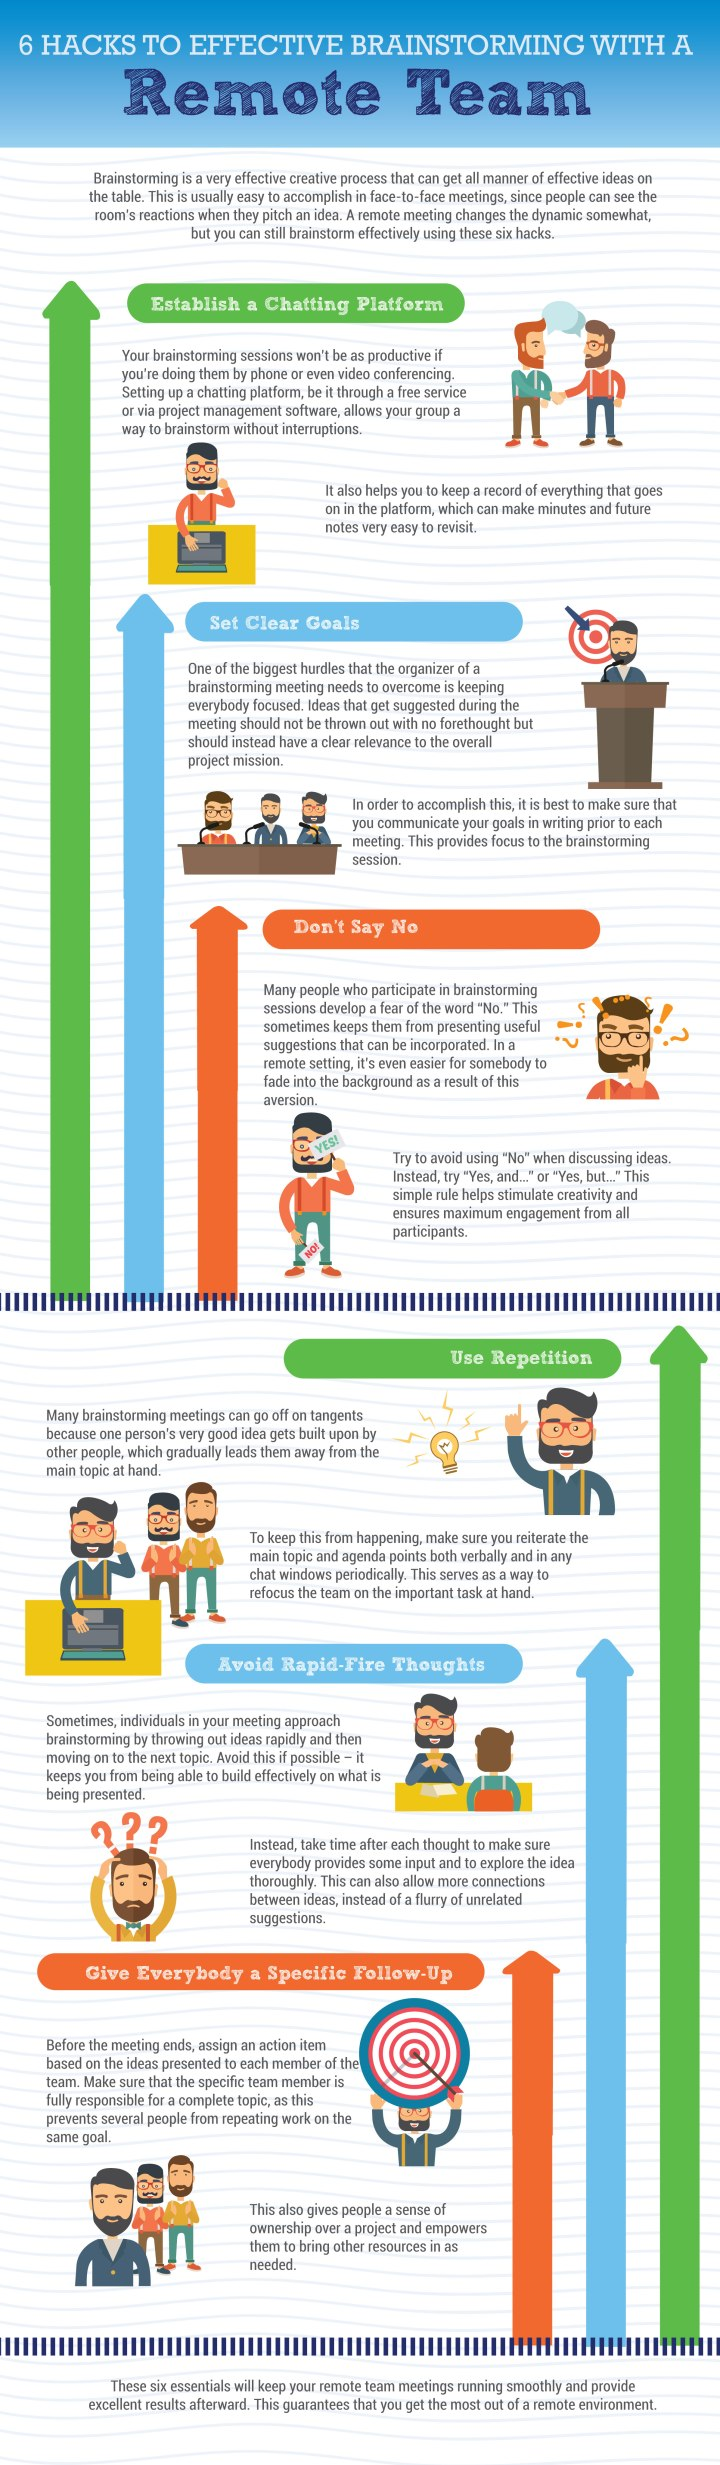 INFOGRAPHIC: 6 Hacks to Effective Brainstorming with a Remote Team